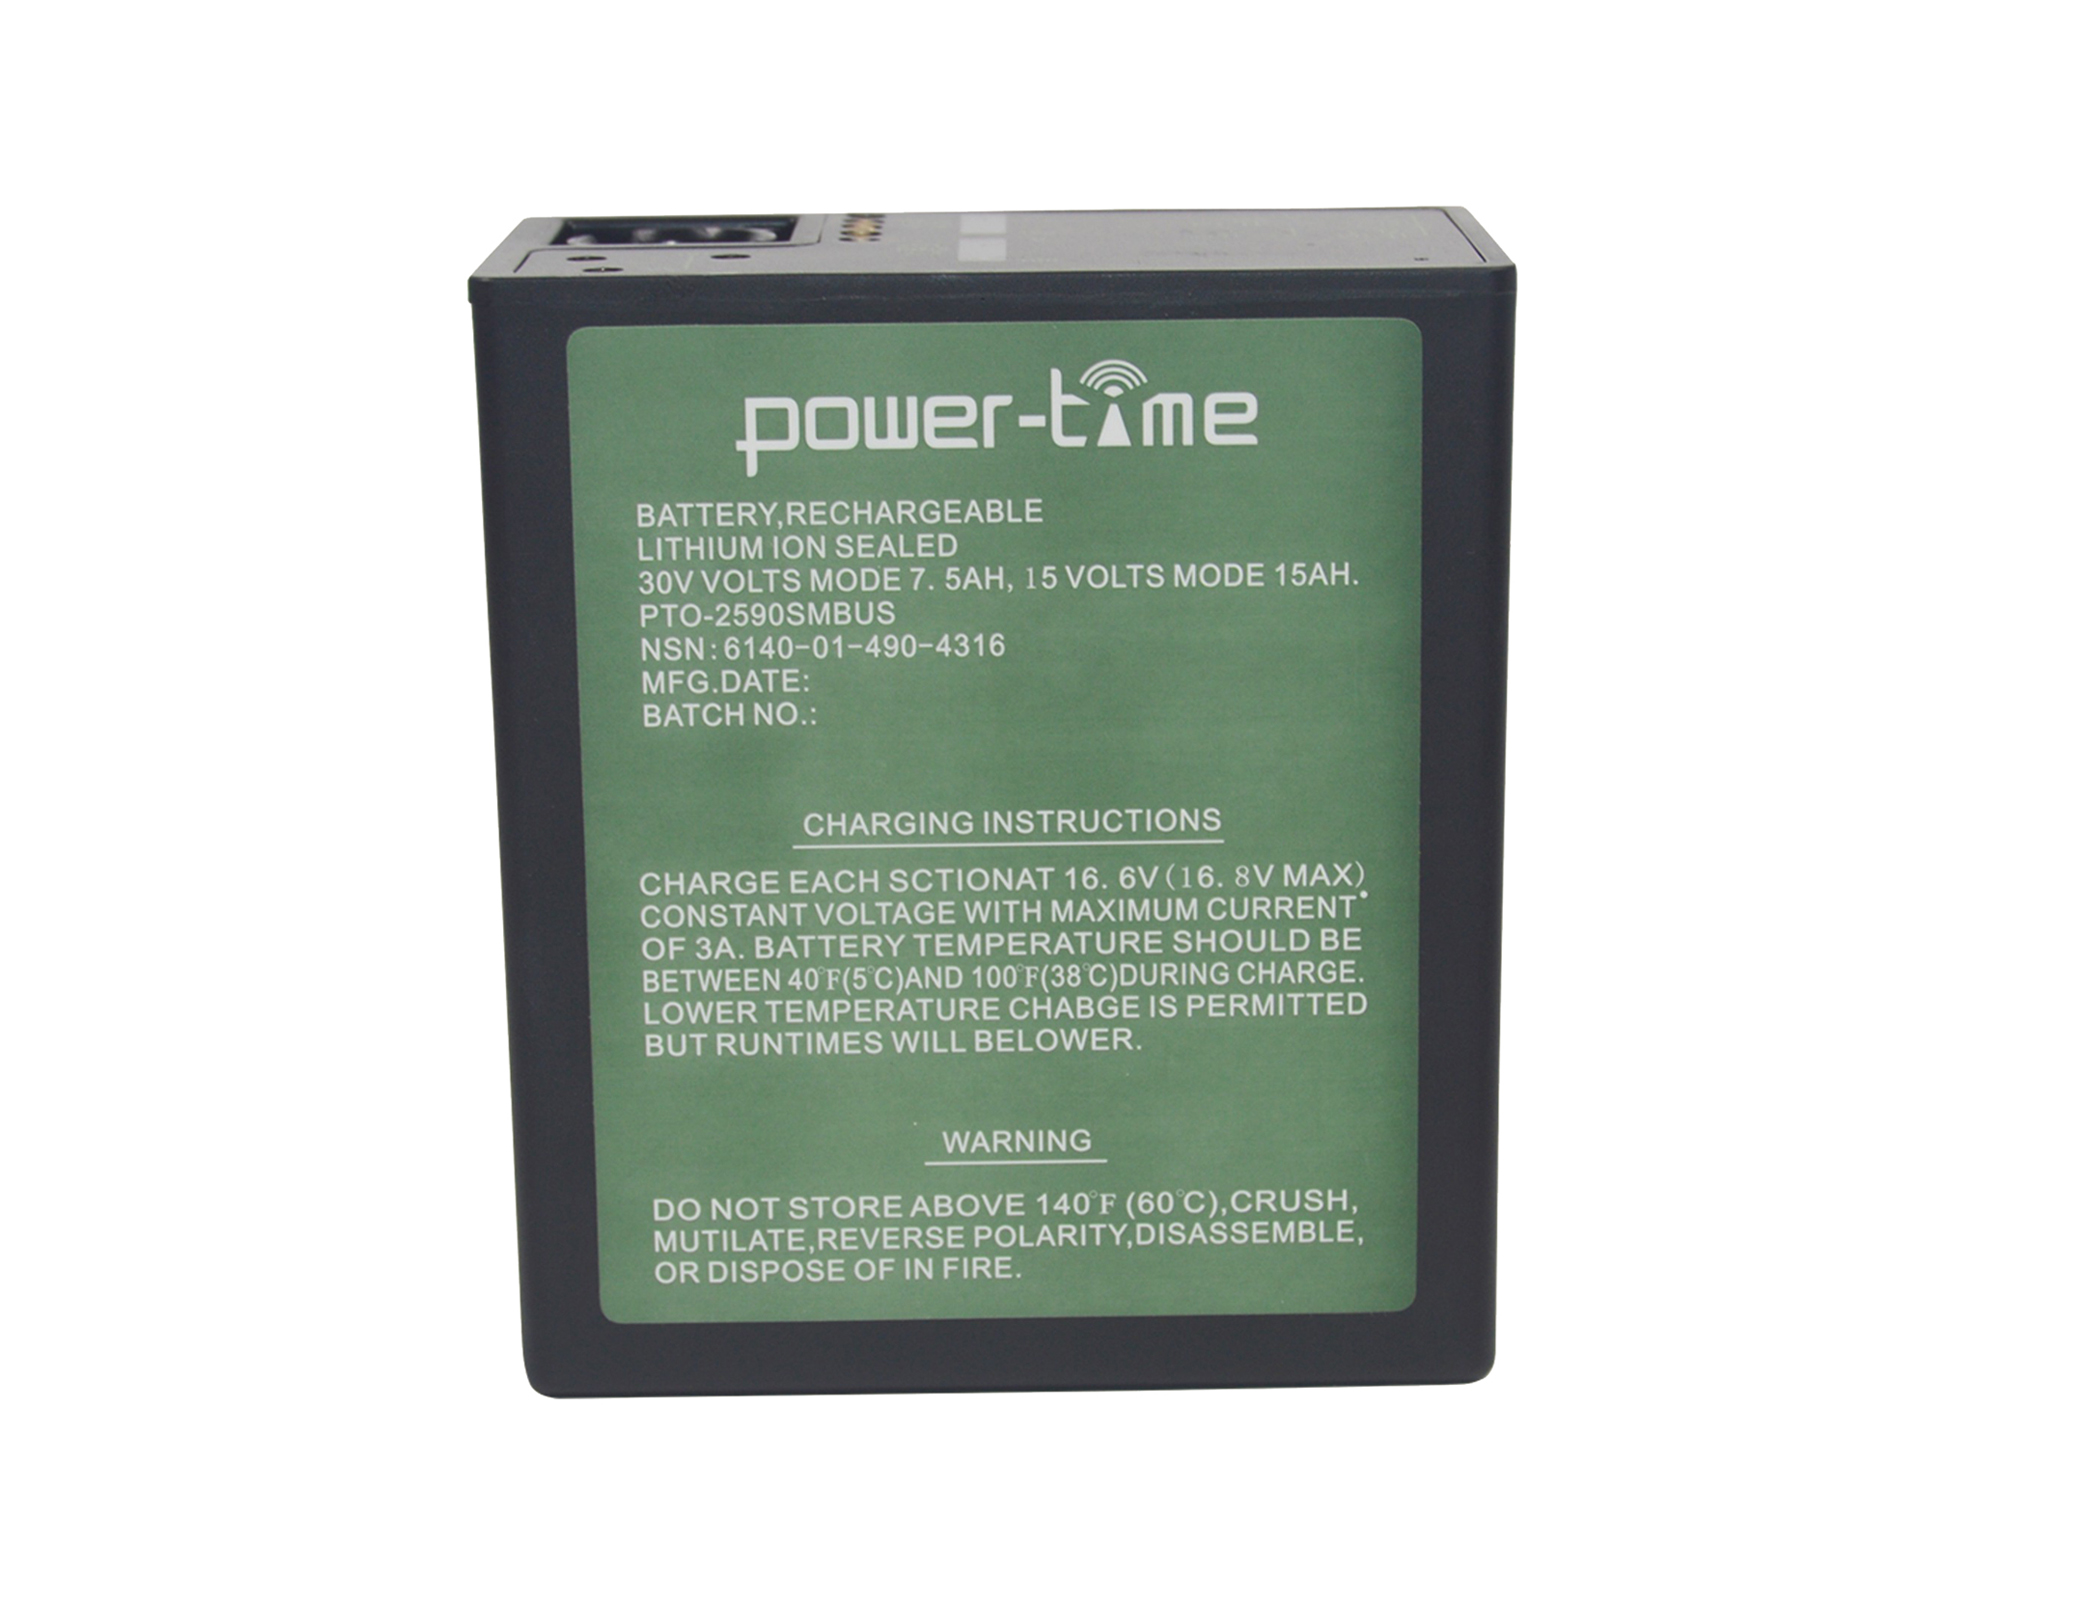 BB-2590/U alkaline battery